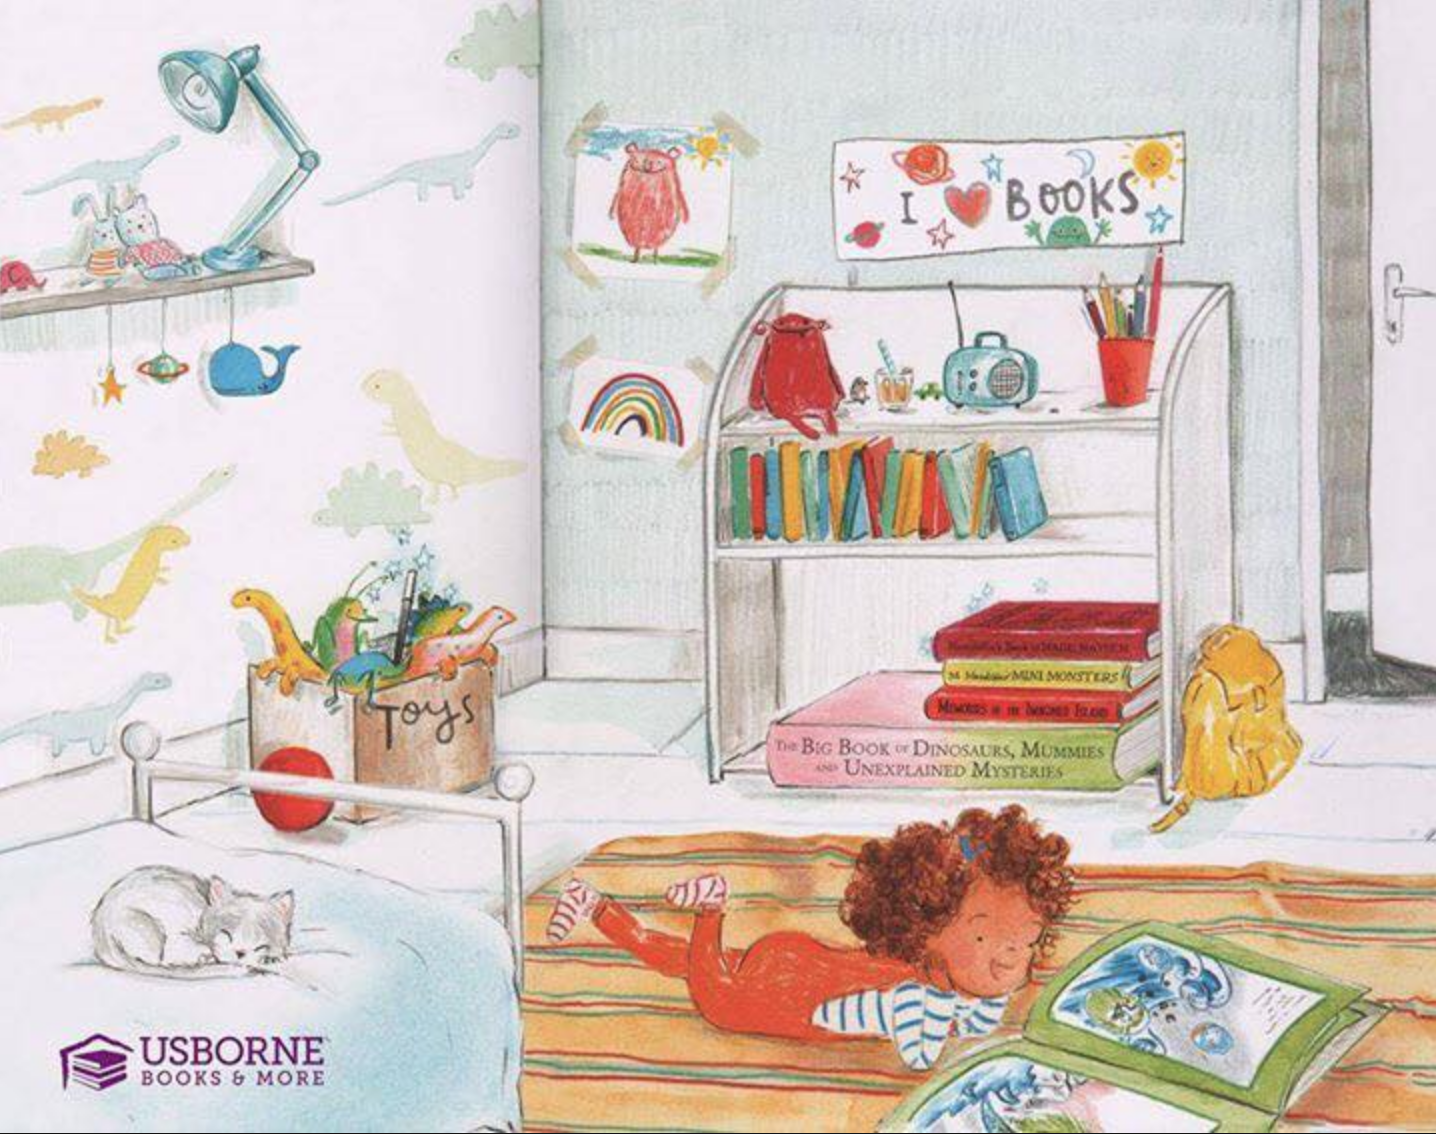 Usborne books catalog